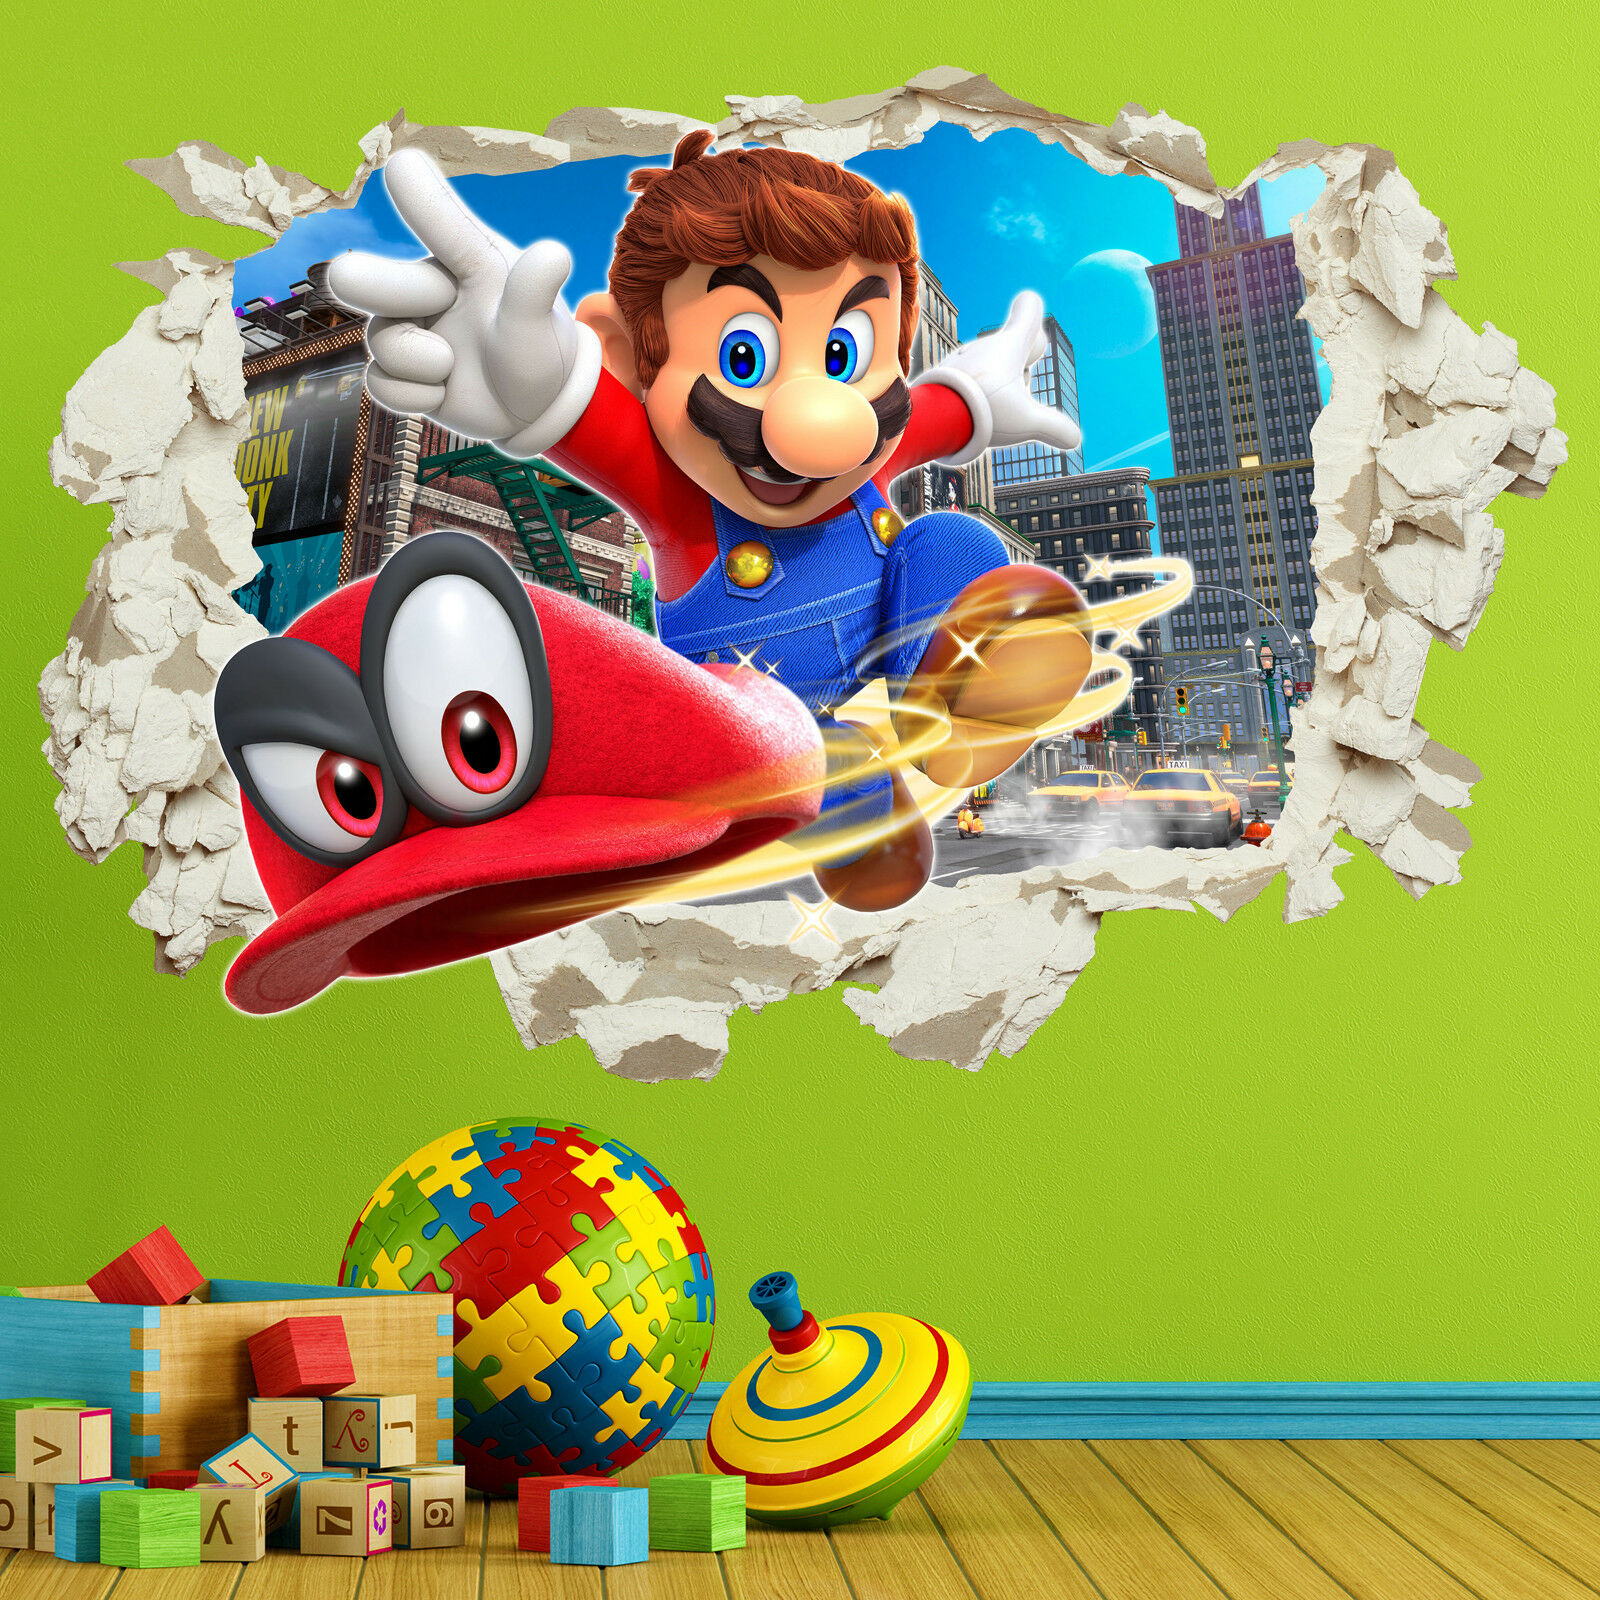 Home Decoration - Super Mario Odyssey Wall Stickers Decals in Crack Bedroom Kids Gift Home Decor